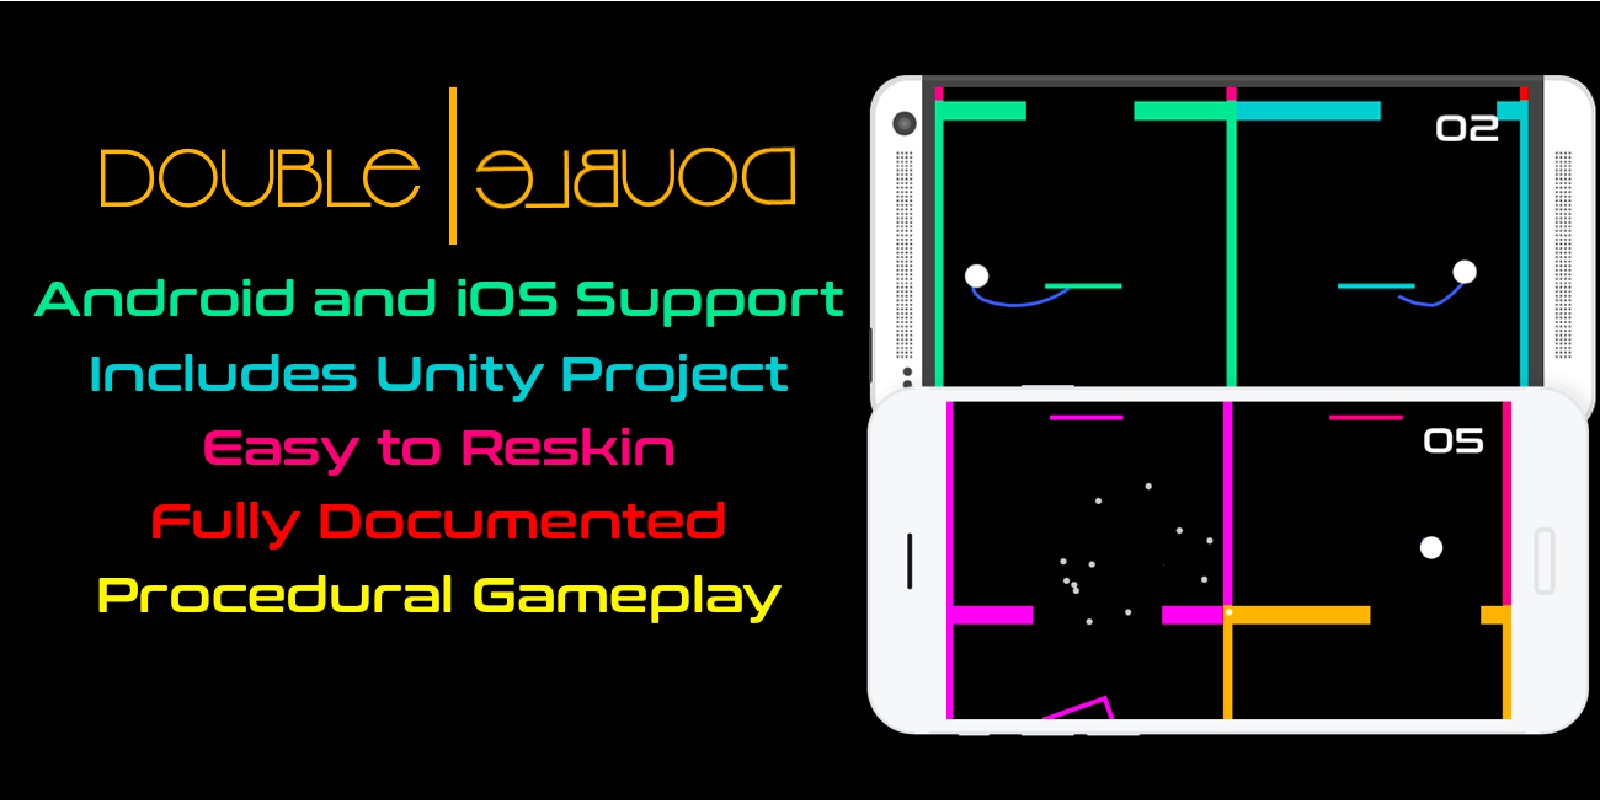 Double - Unity Mobile Game Template